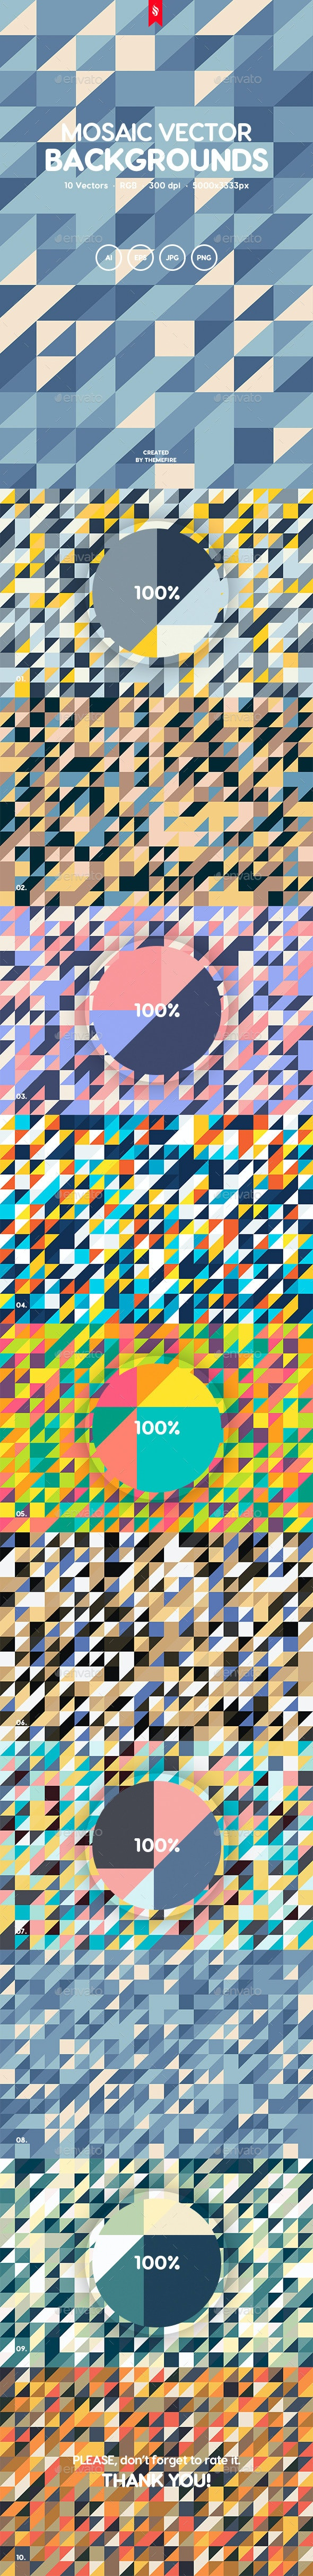 Mosaic Vector Backgrounds - Patterns Backgrounds